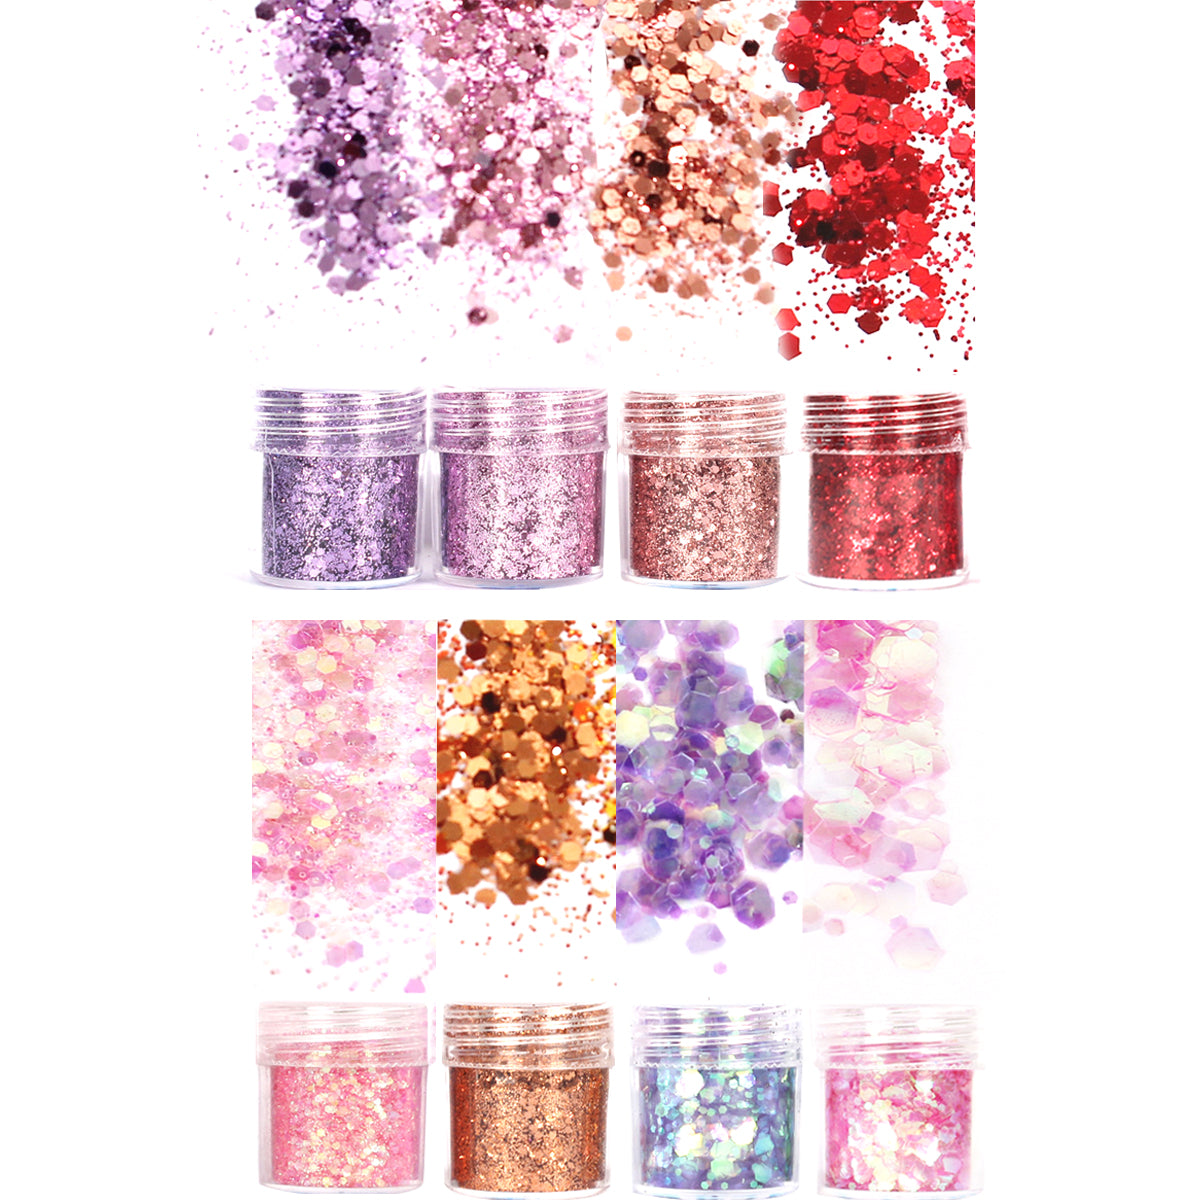 Wrapables Chunky Glitter for Hair Face Makeup Nail Art Decoration (8 Colors), Gold & Silver